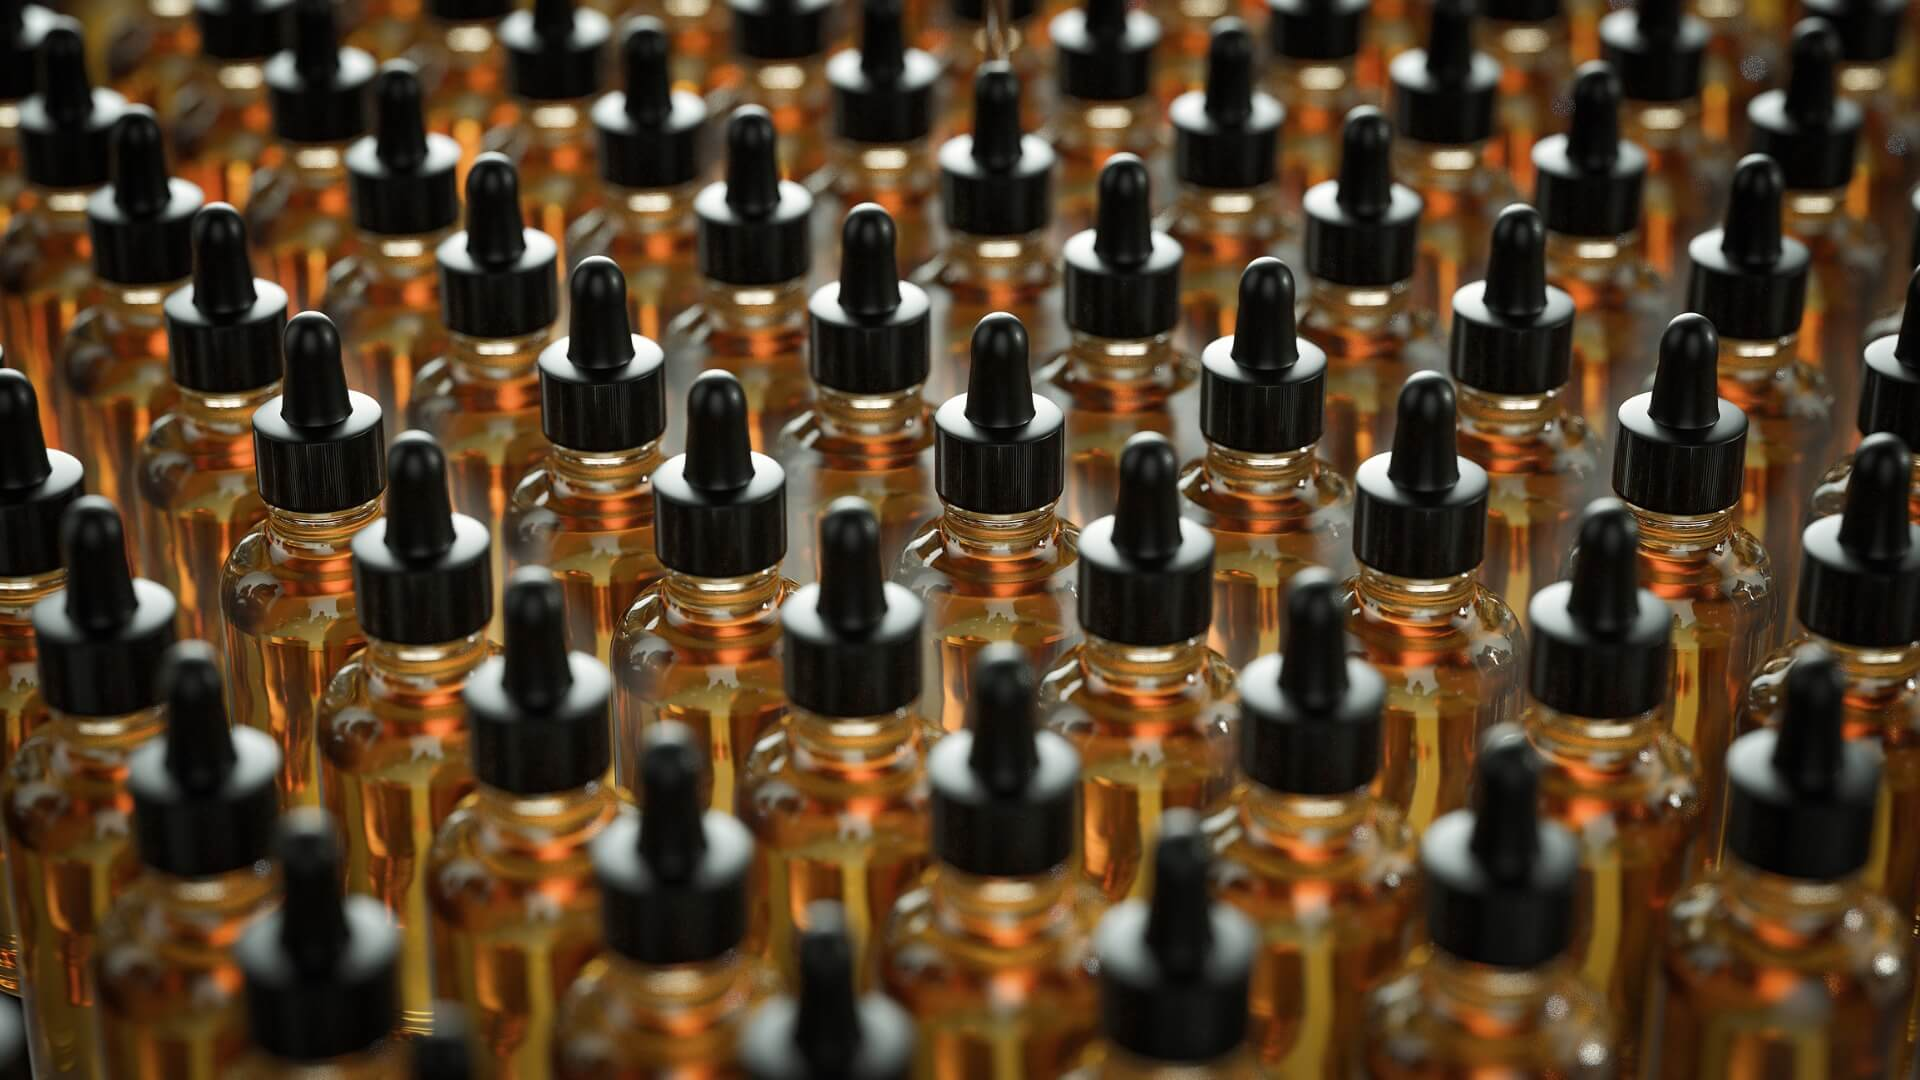 Row and row of cannabis oil